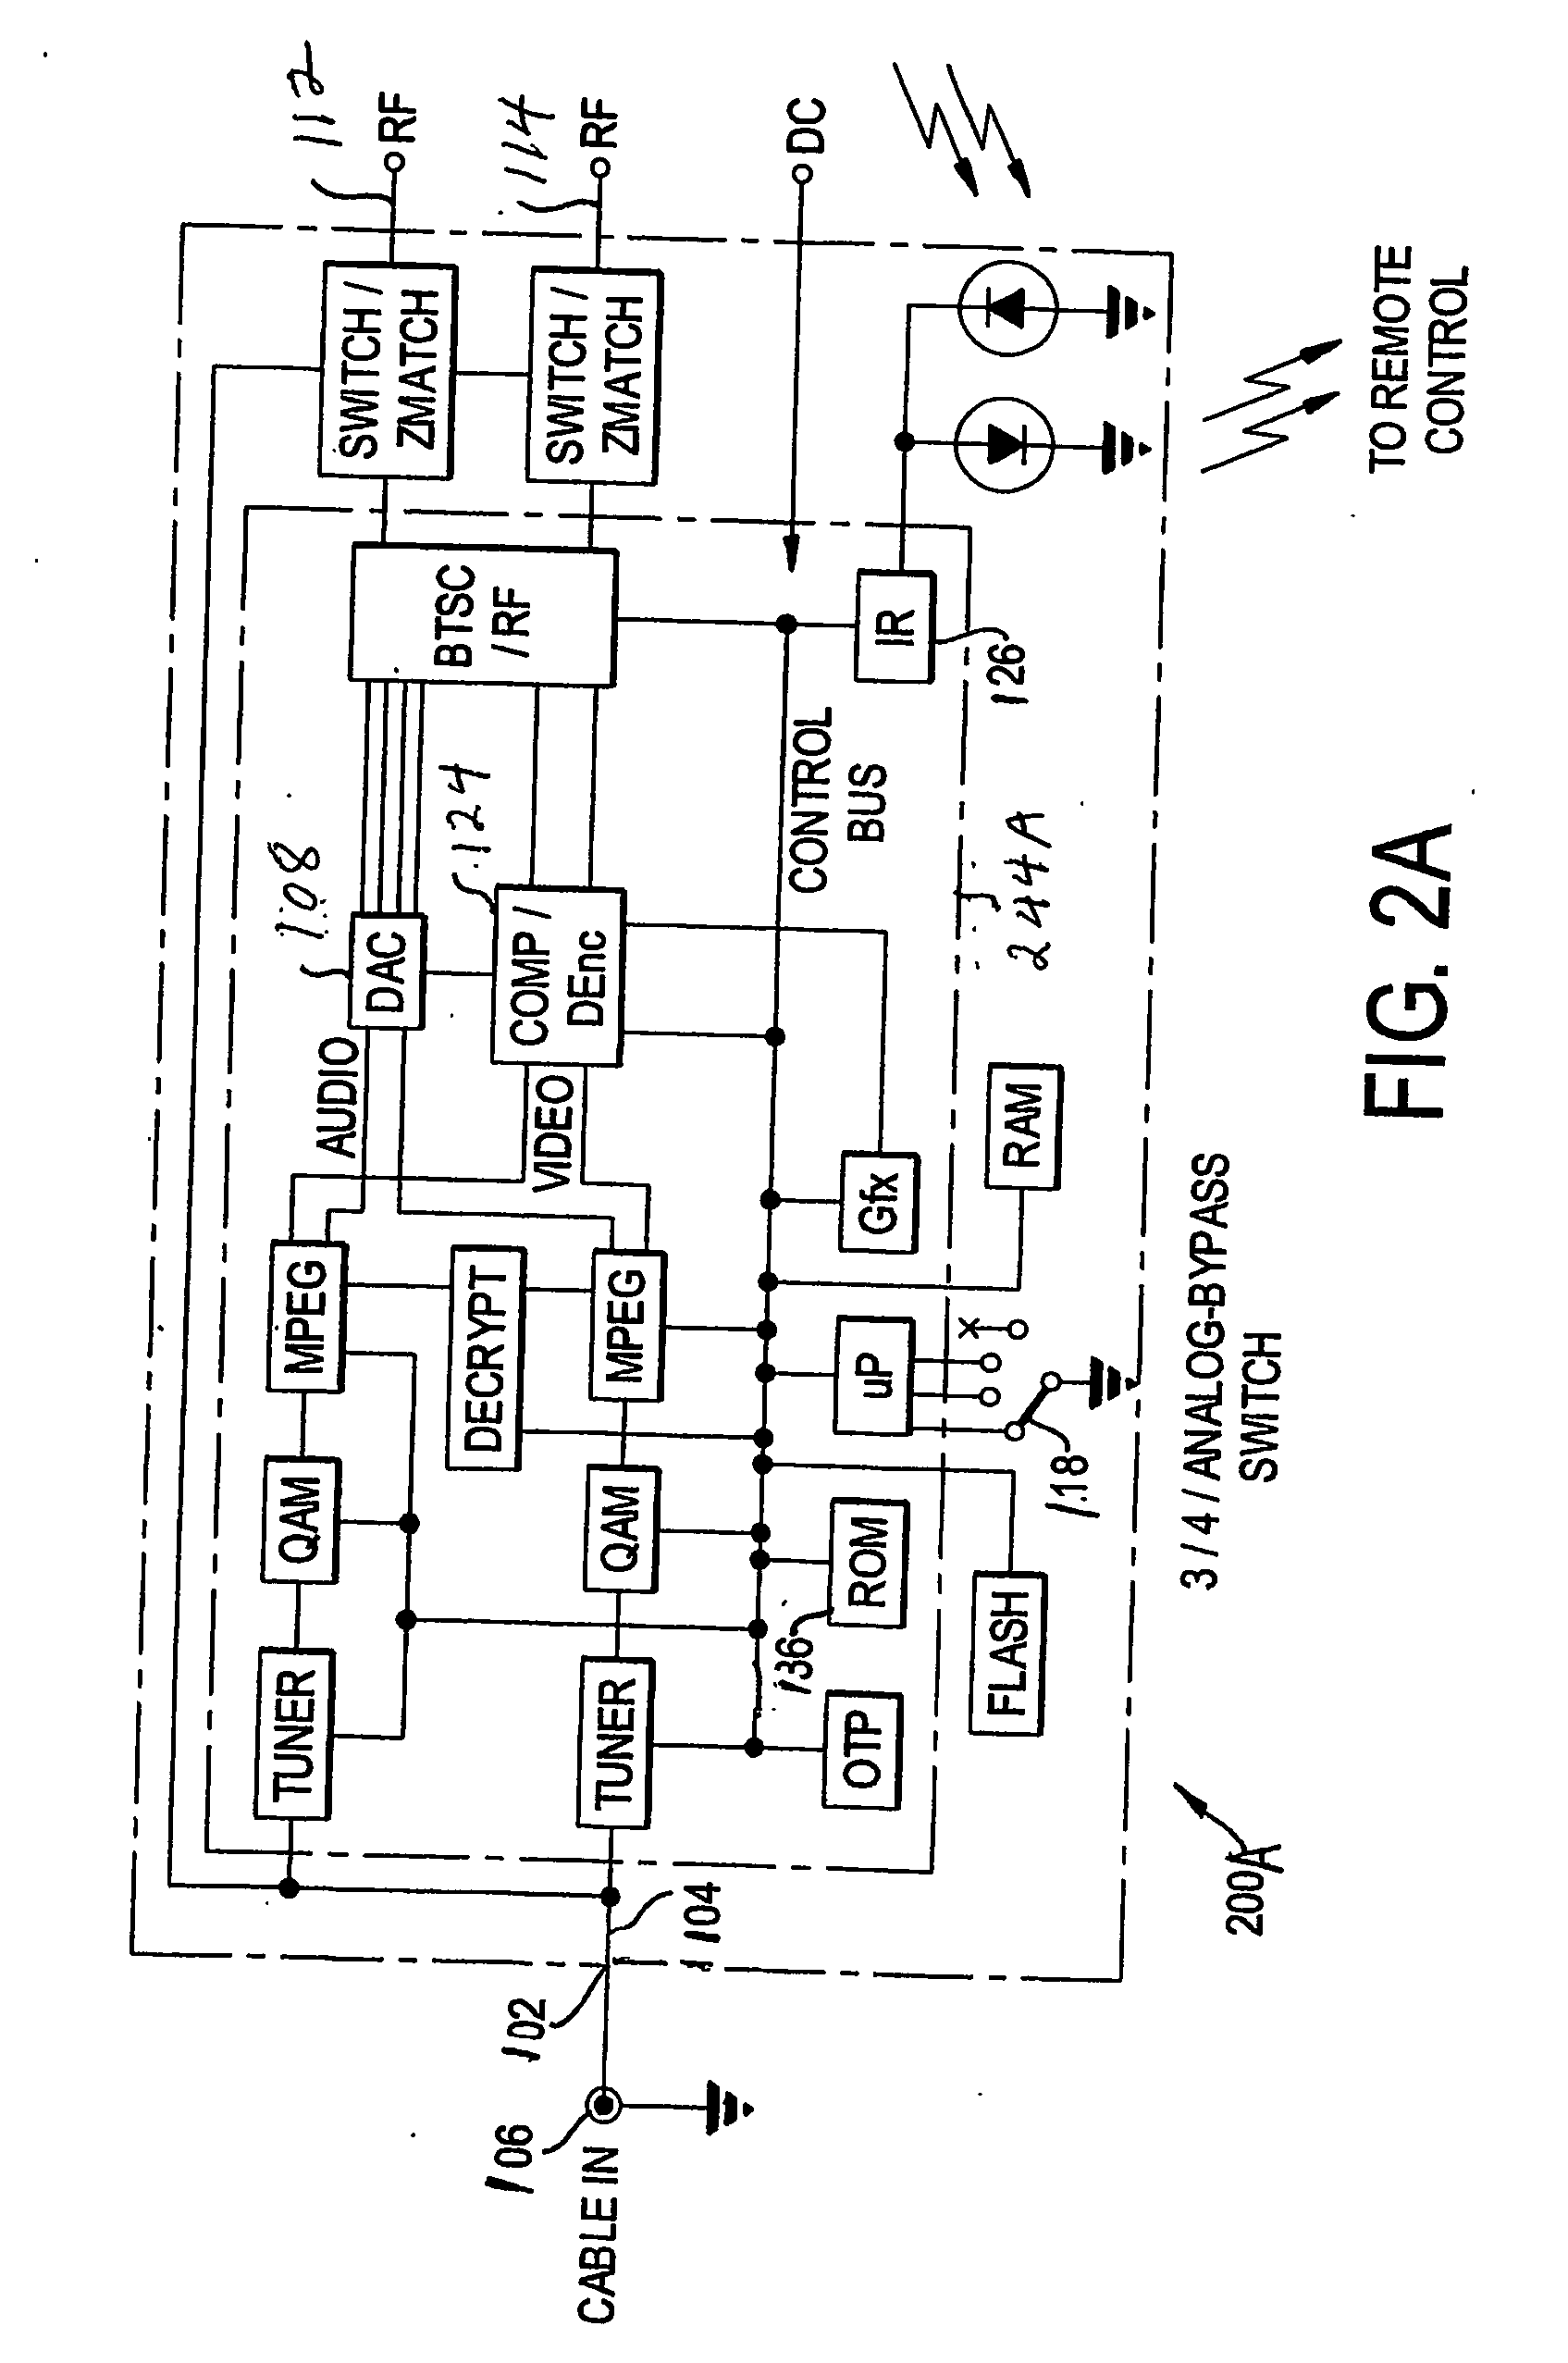 Patent Us20060282875 Digital Cable Adapter Google Patents Pip And Vcr Wiring Diagram Drawing